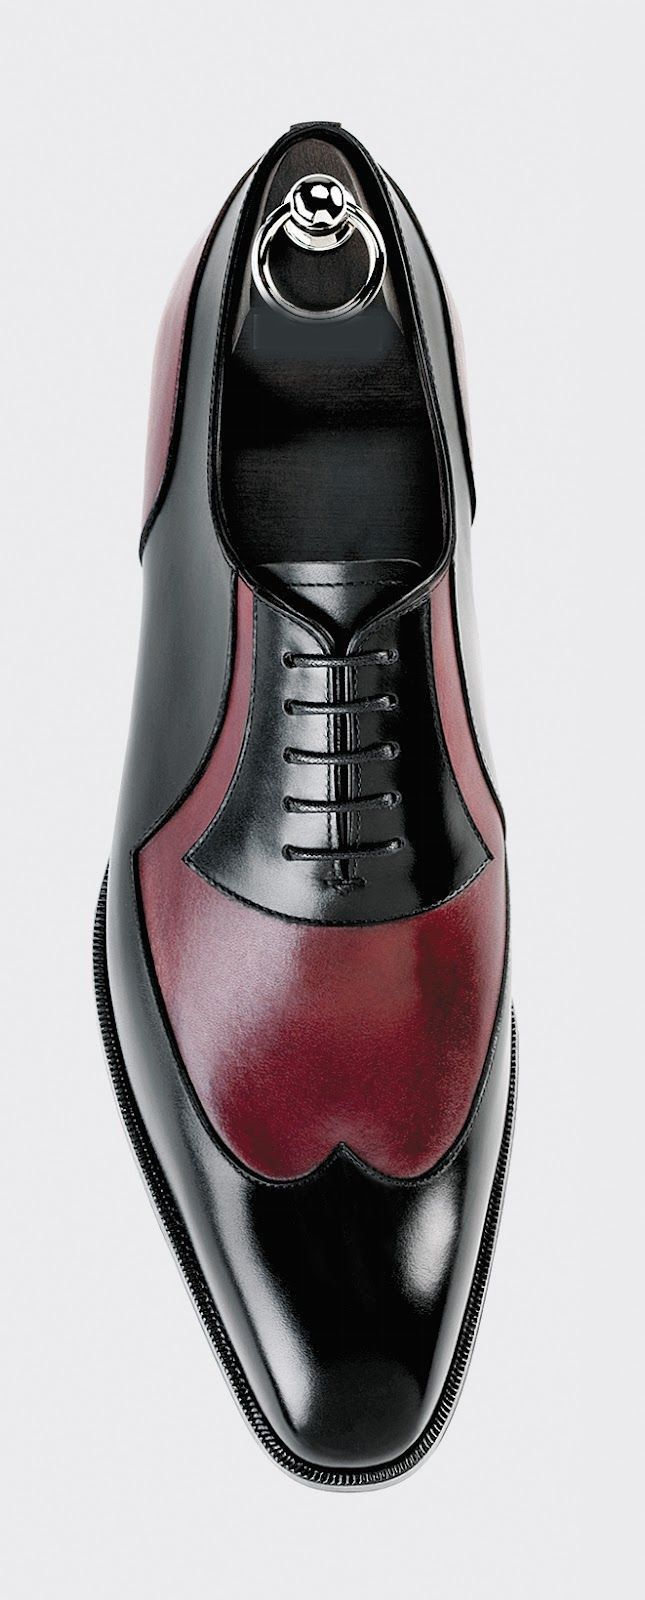 Black Maroon Oxford Patent Two Tone Attractive Genuine Leather Handmade Men's Shoes is part of Dress shoes men, Shoes mens, Gentleman shoes, Fashion shoes, Mens fashion, Me too shoes - Black Maroon Oxford Patent Two Tone Attractive Genuine Leather Handmade Men's Shoes   Genuine Cowhide  Leather 100% Handmade Made To Order Attractive Look Discounted price Custom Size and Design Option Available Sole made with pure Cow Leather Heel made with Cow Leather Ready To ship Shoes, Pictures attached of real shoes after making Any Question please send message